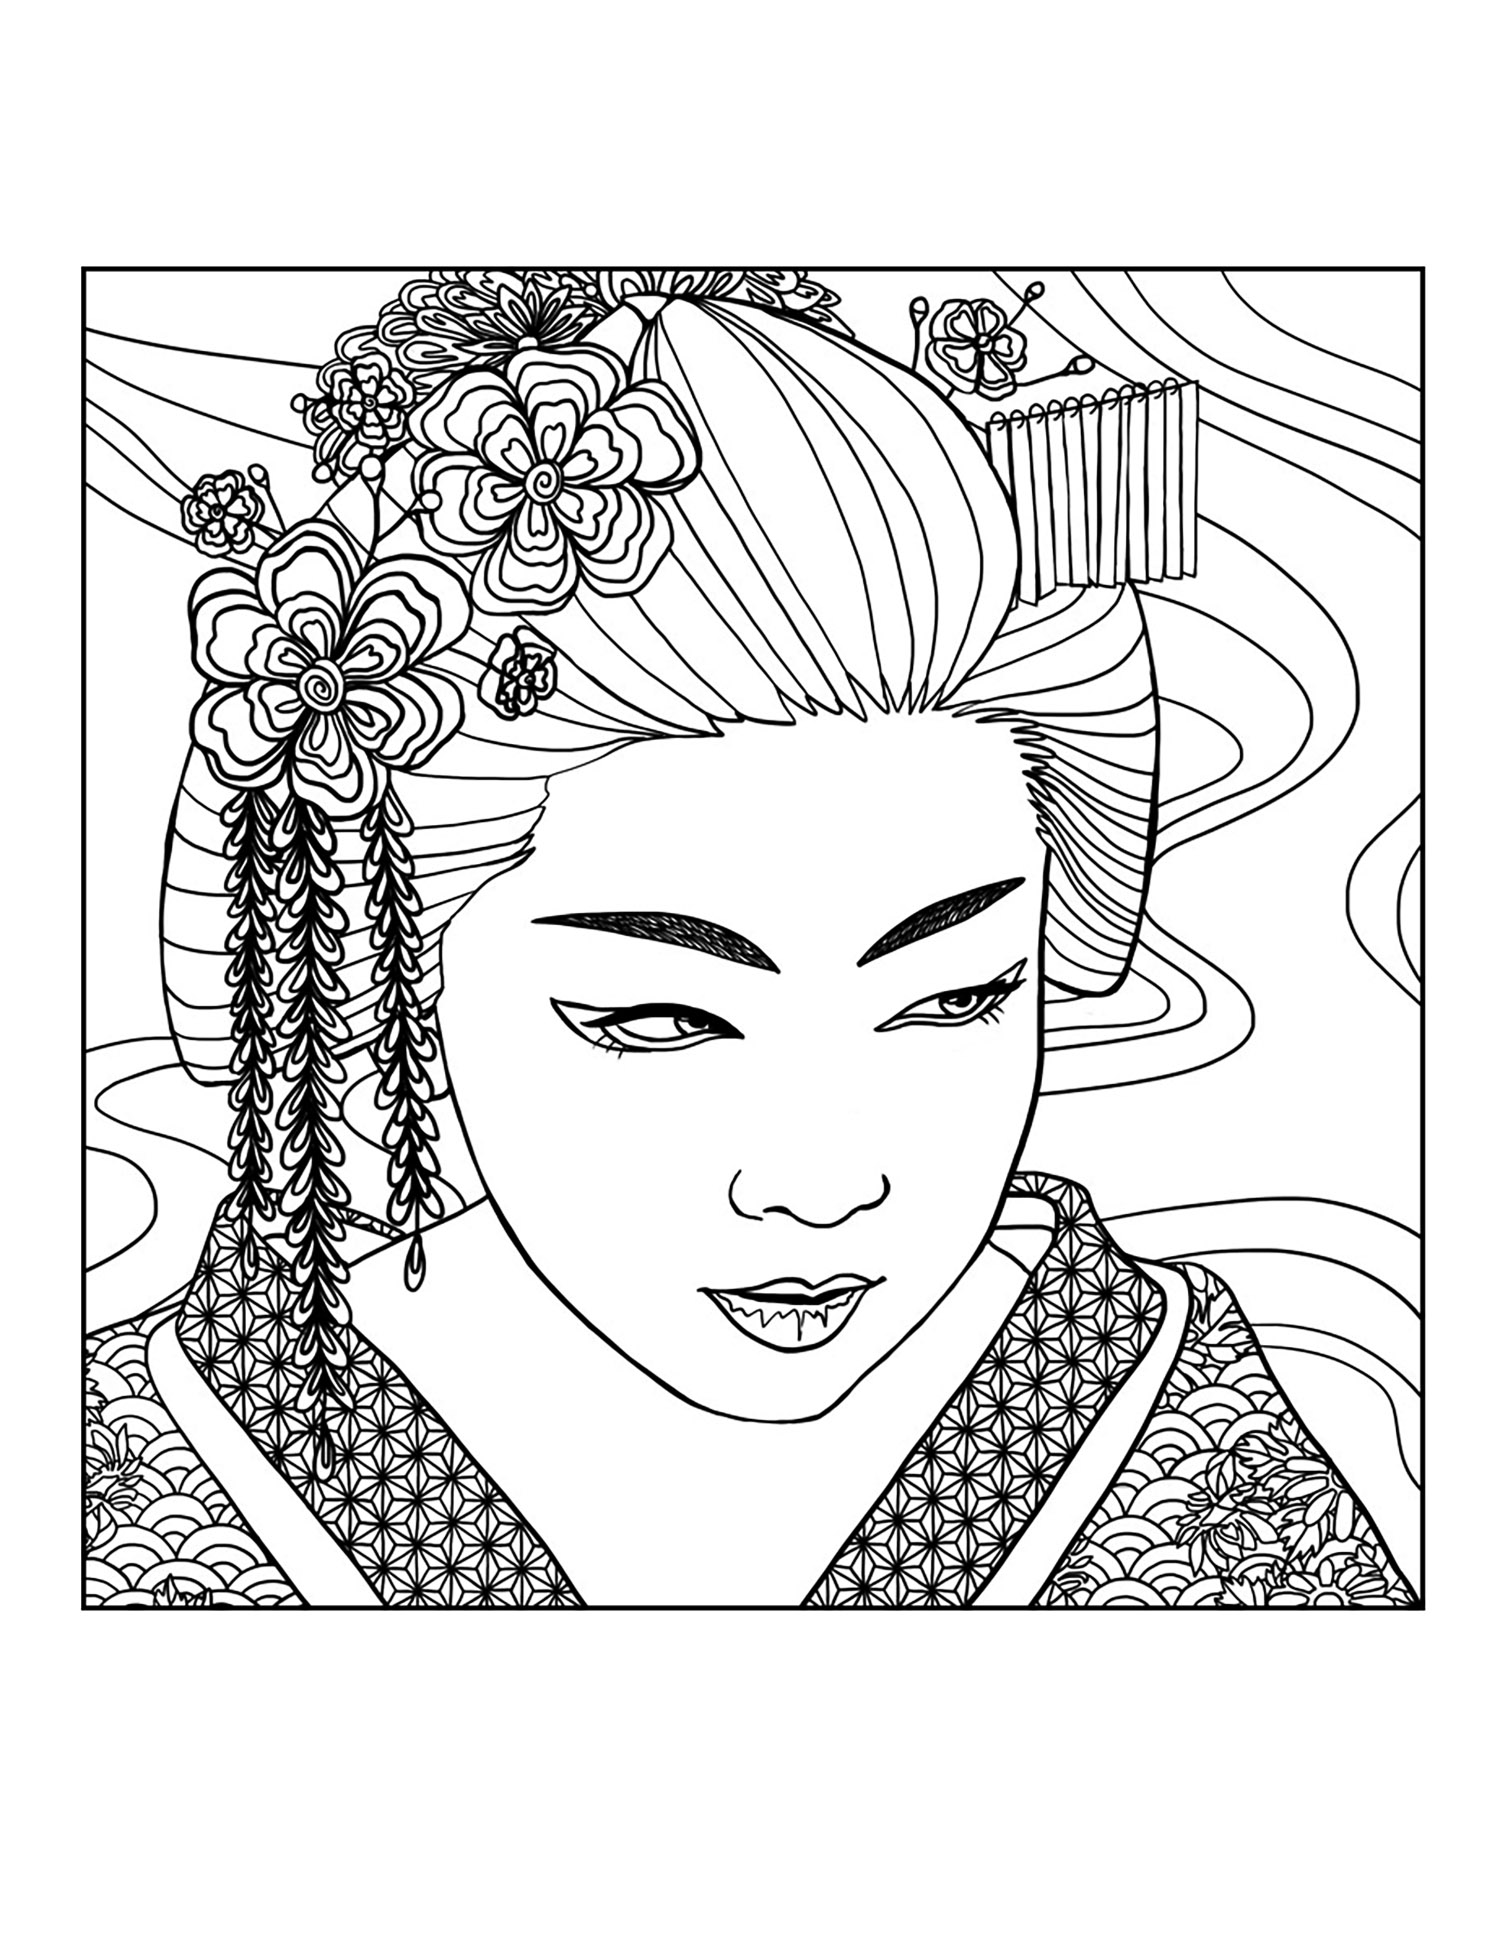 Geisha Coloring Download Geisha Coloring For Free